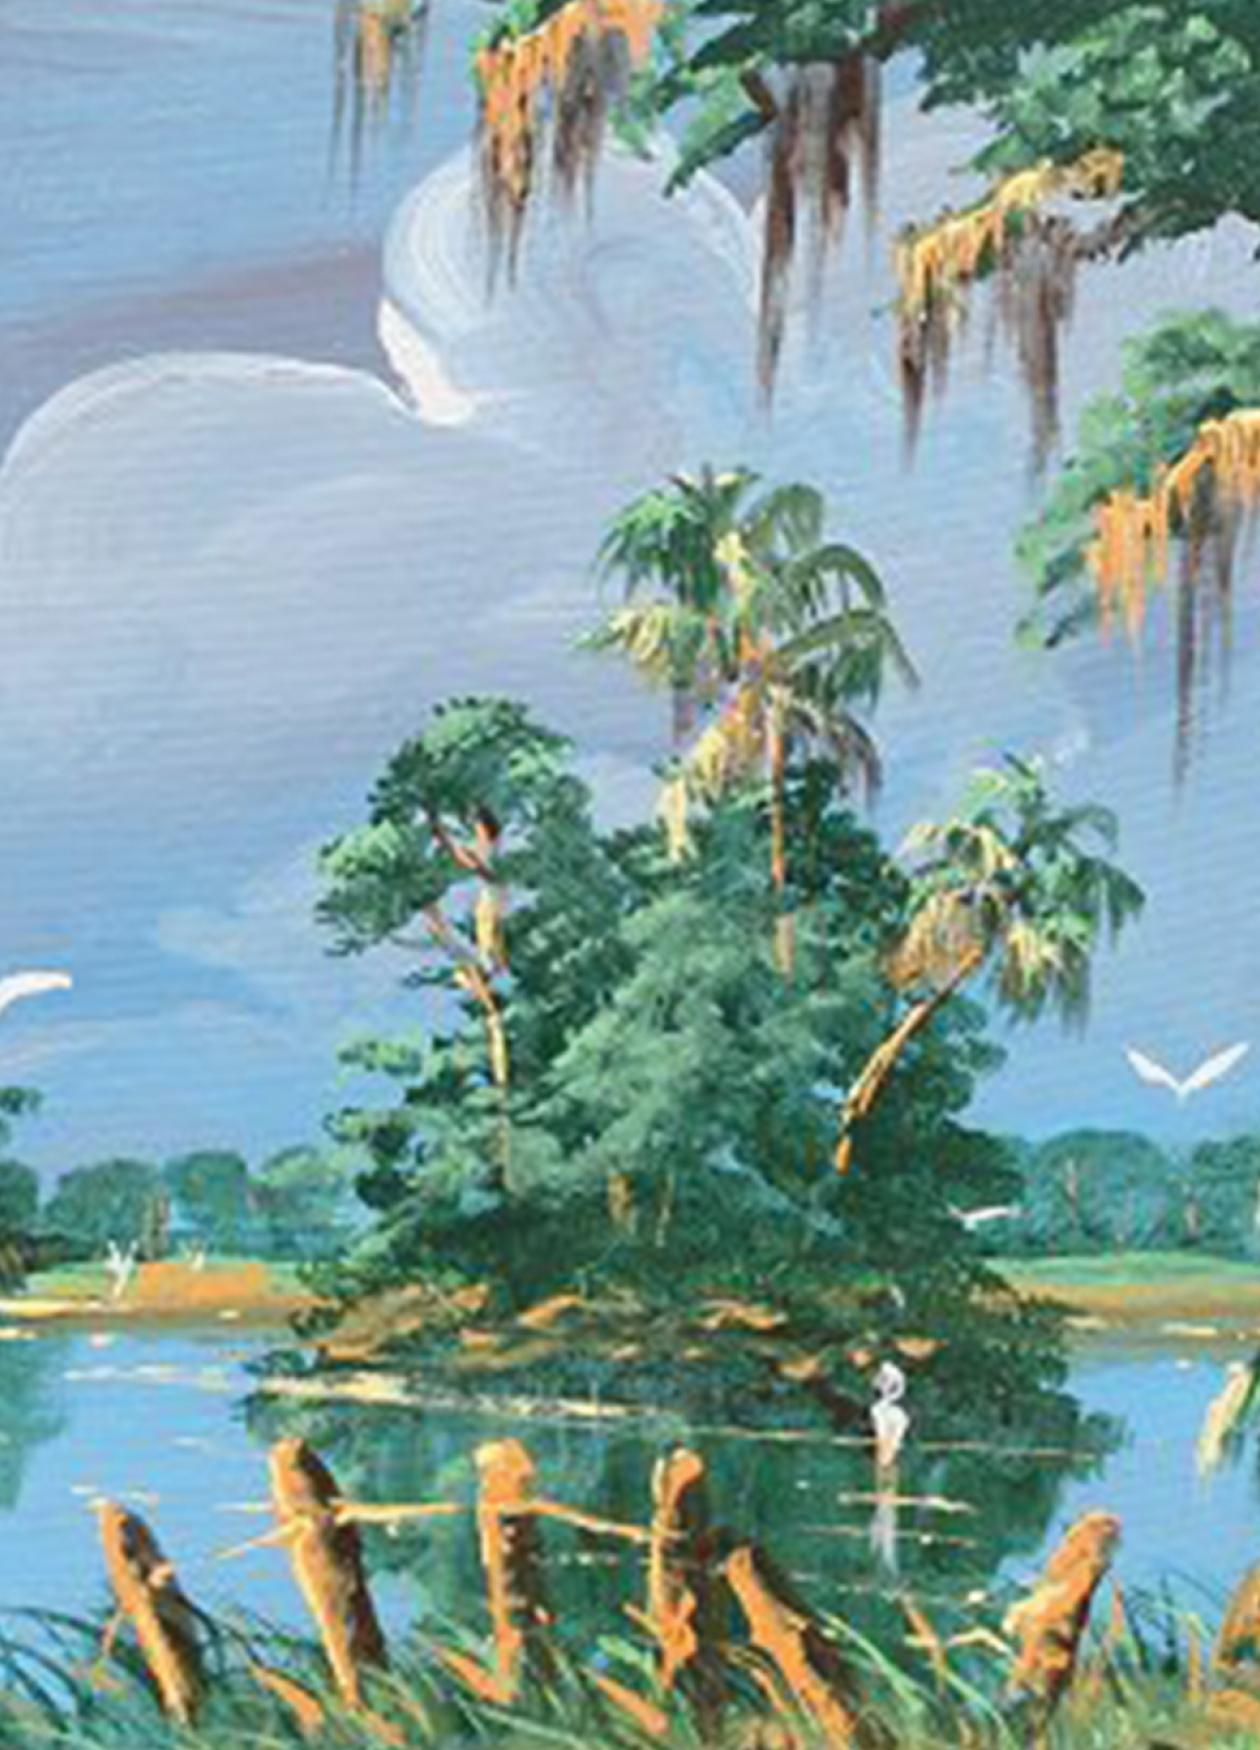 Tropical lagoon, blue water, lush trees, with an island in the center of the water